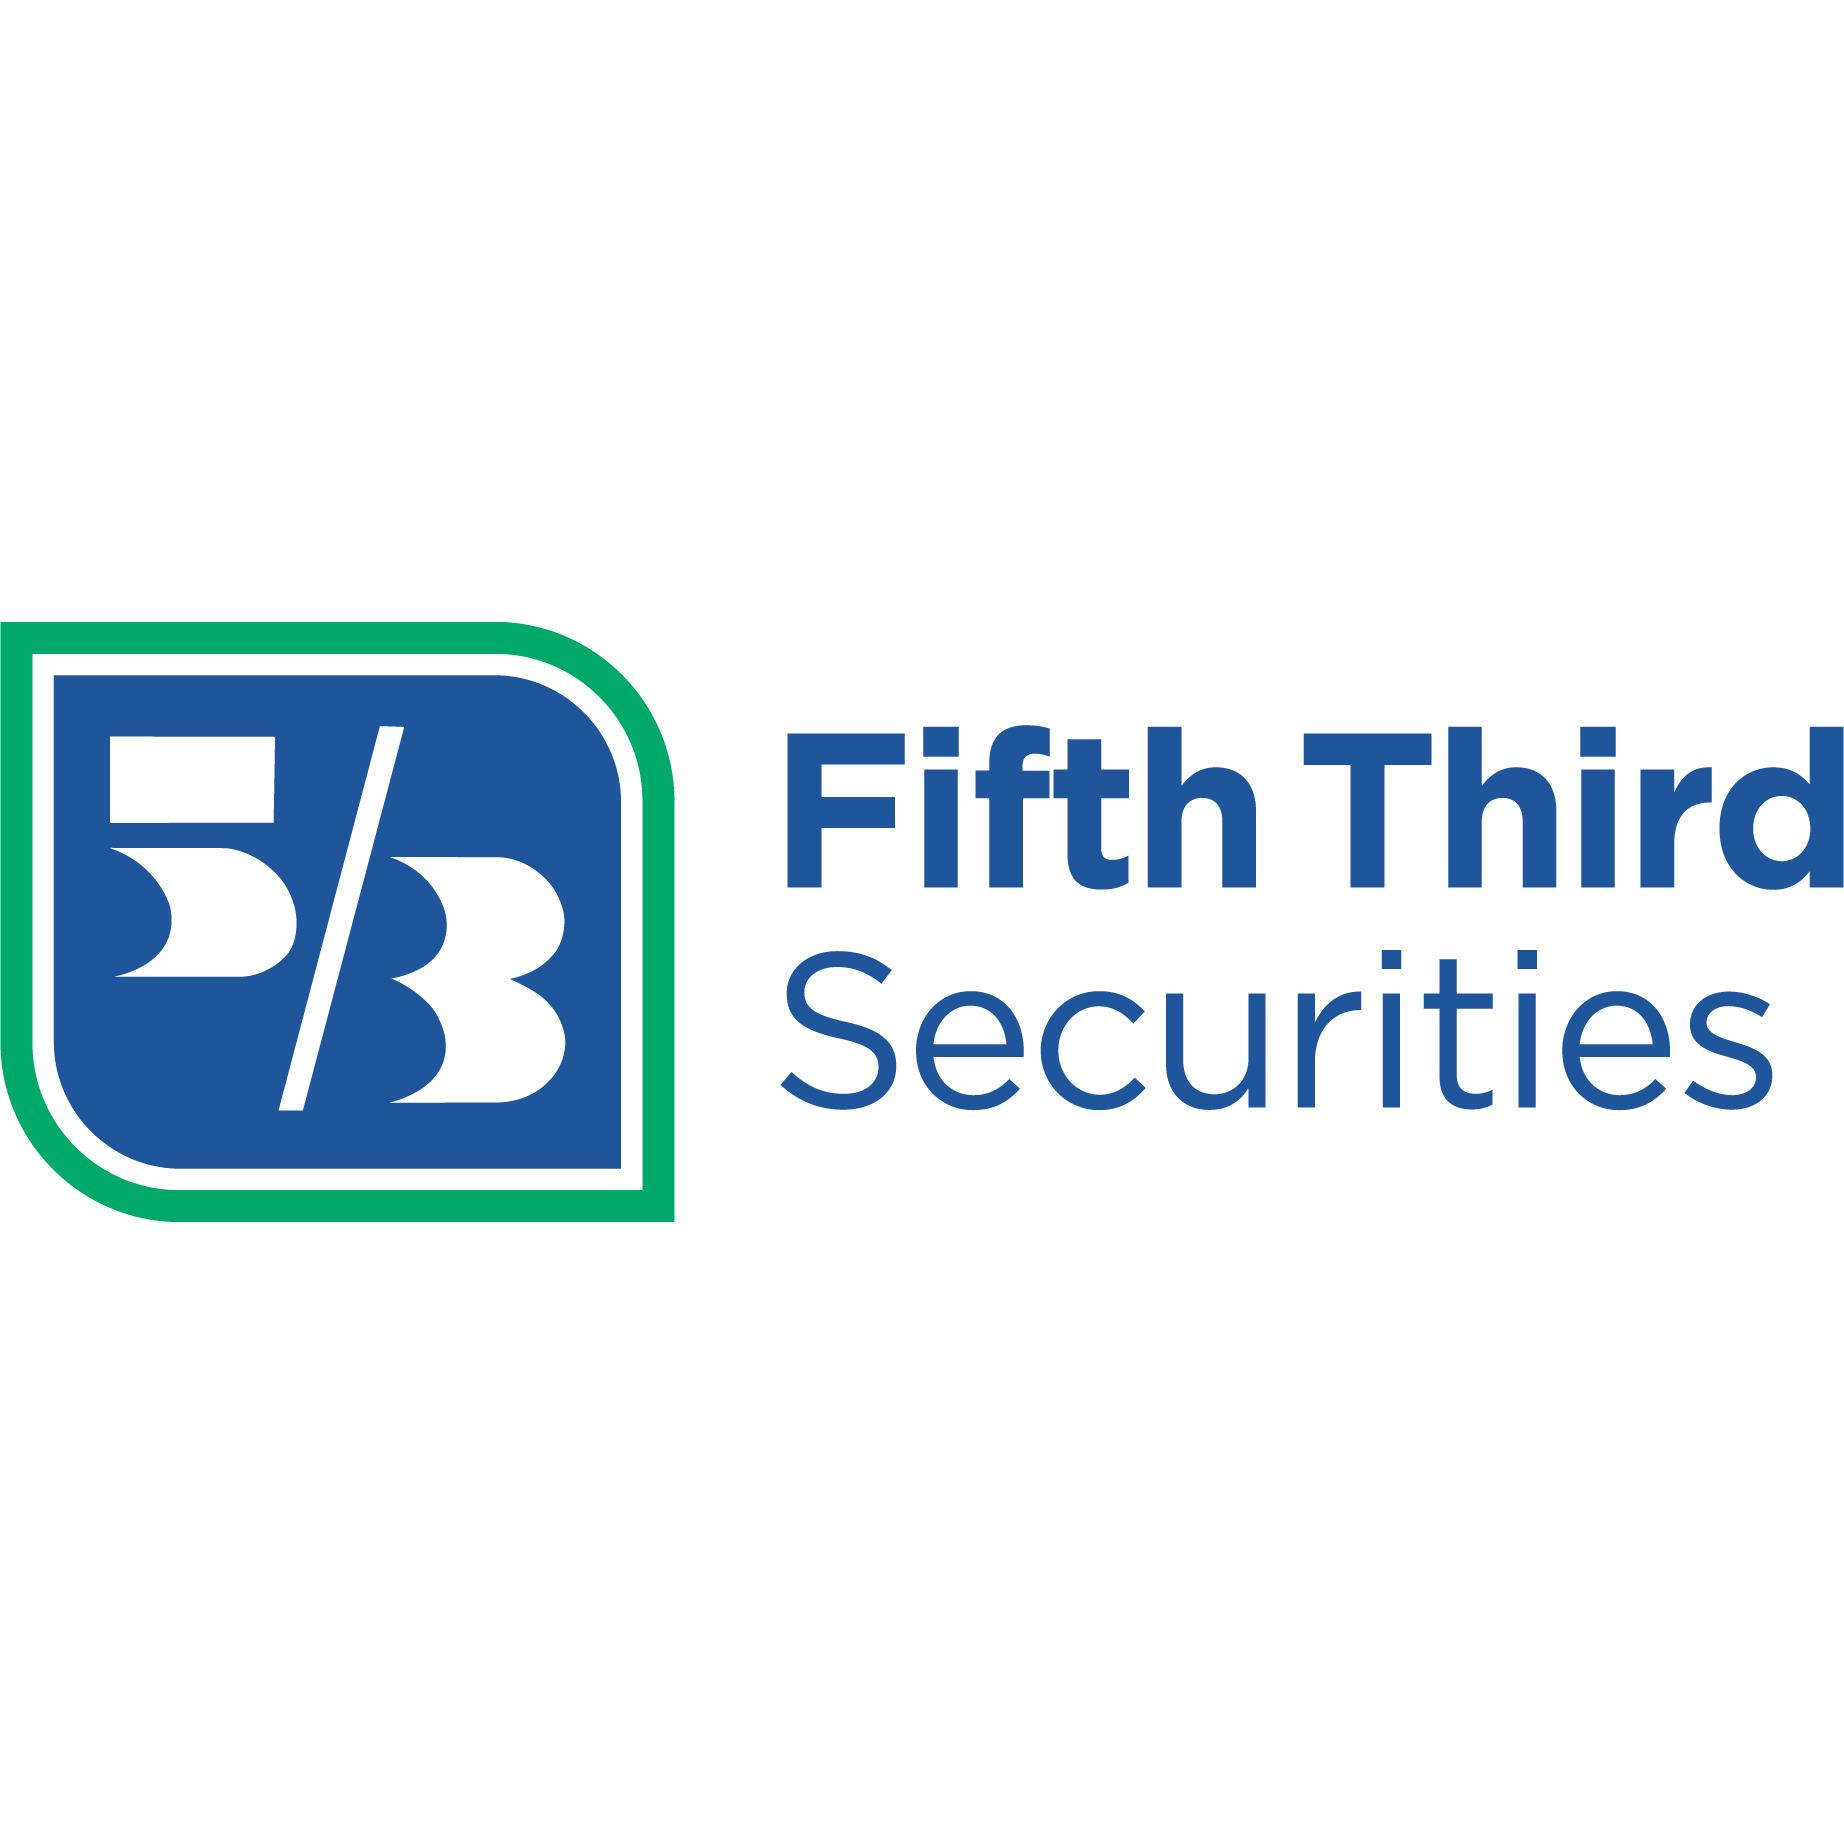 Fifth Third Securities - Phil Weber